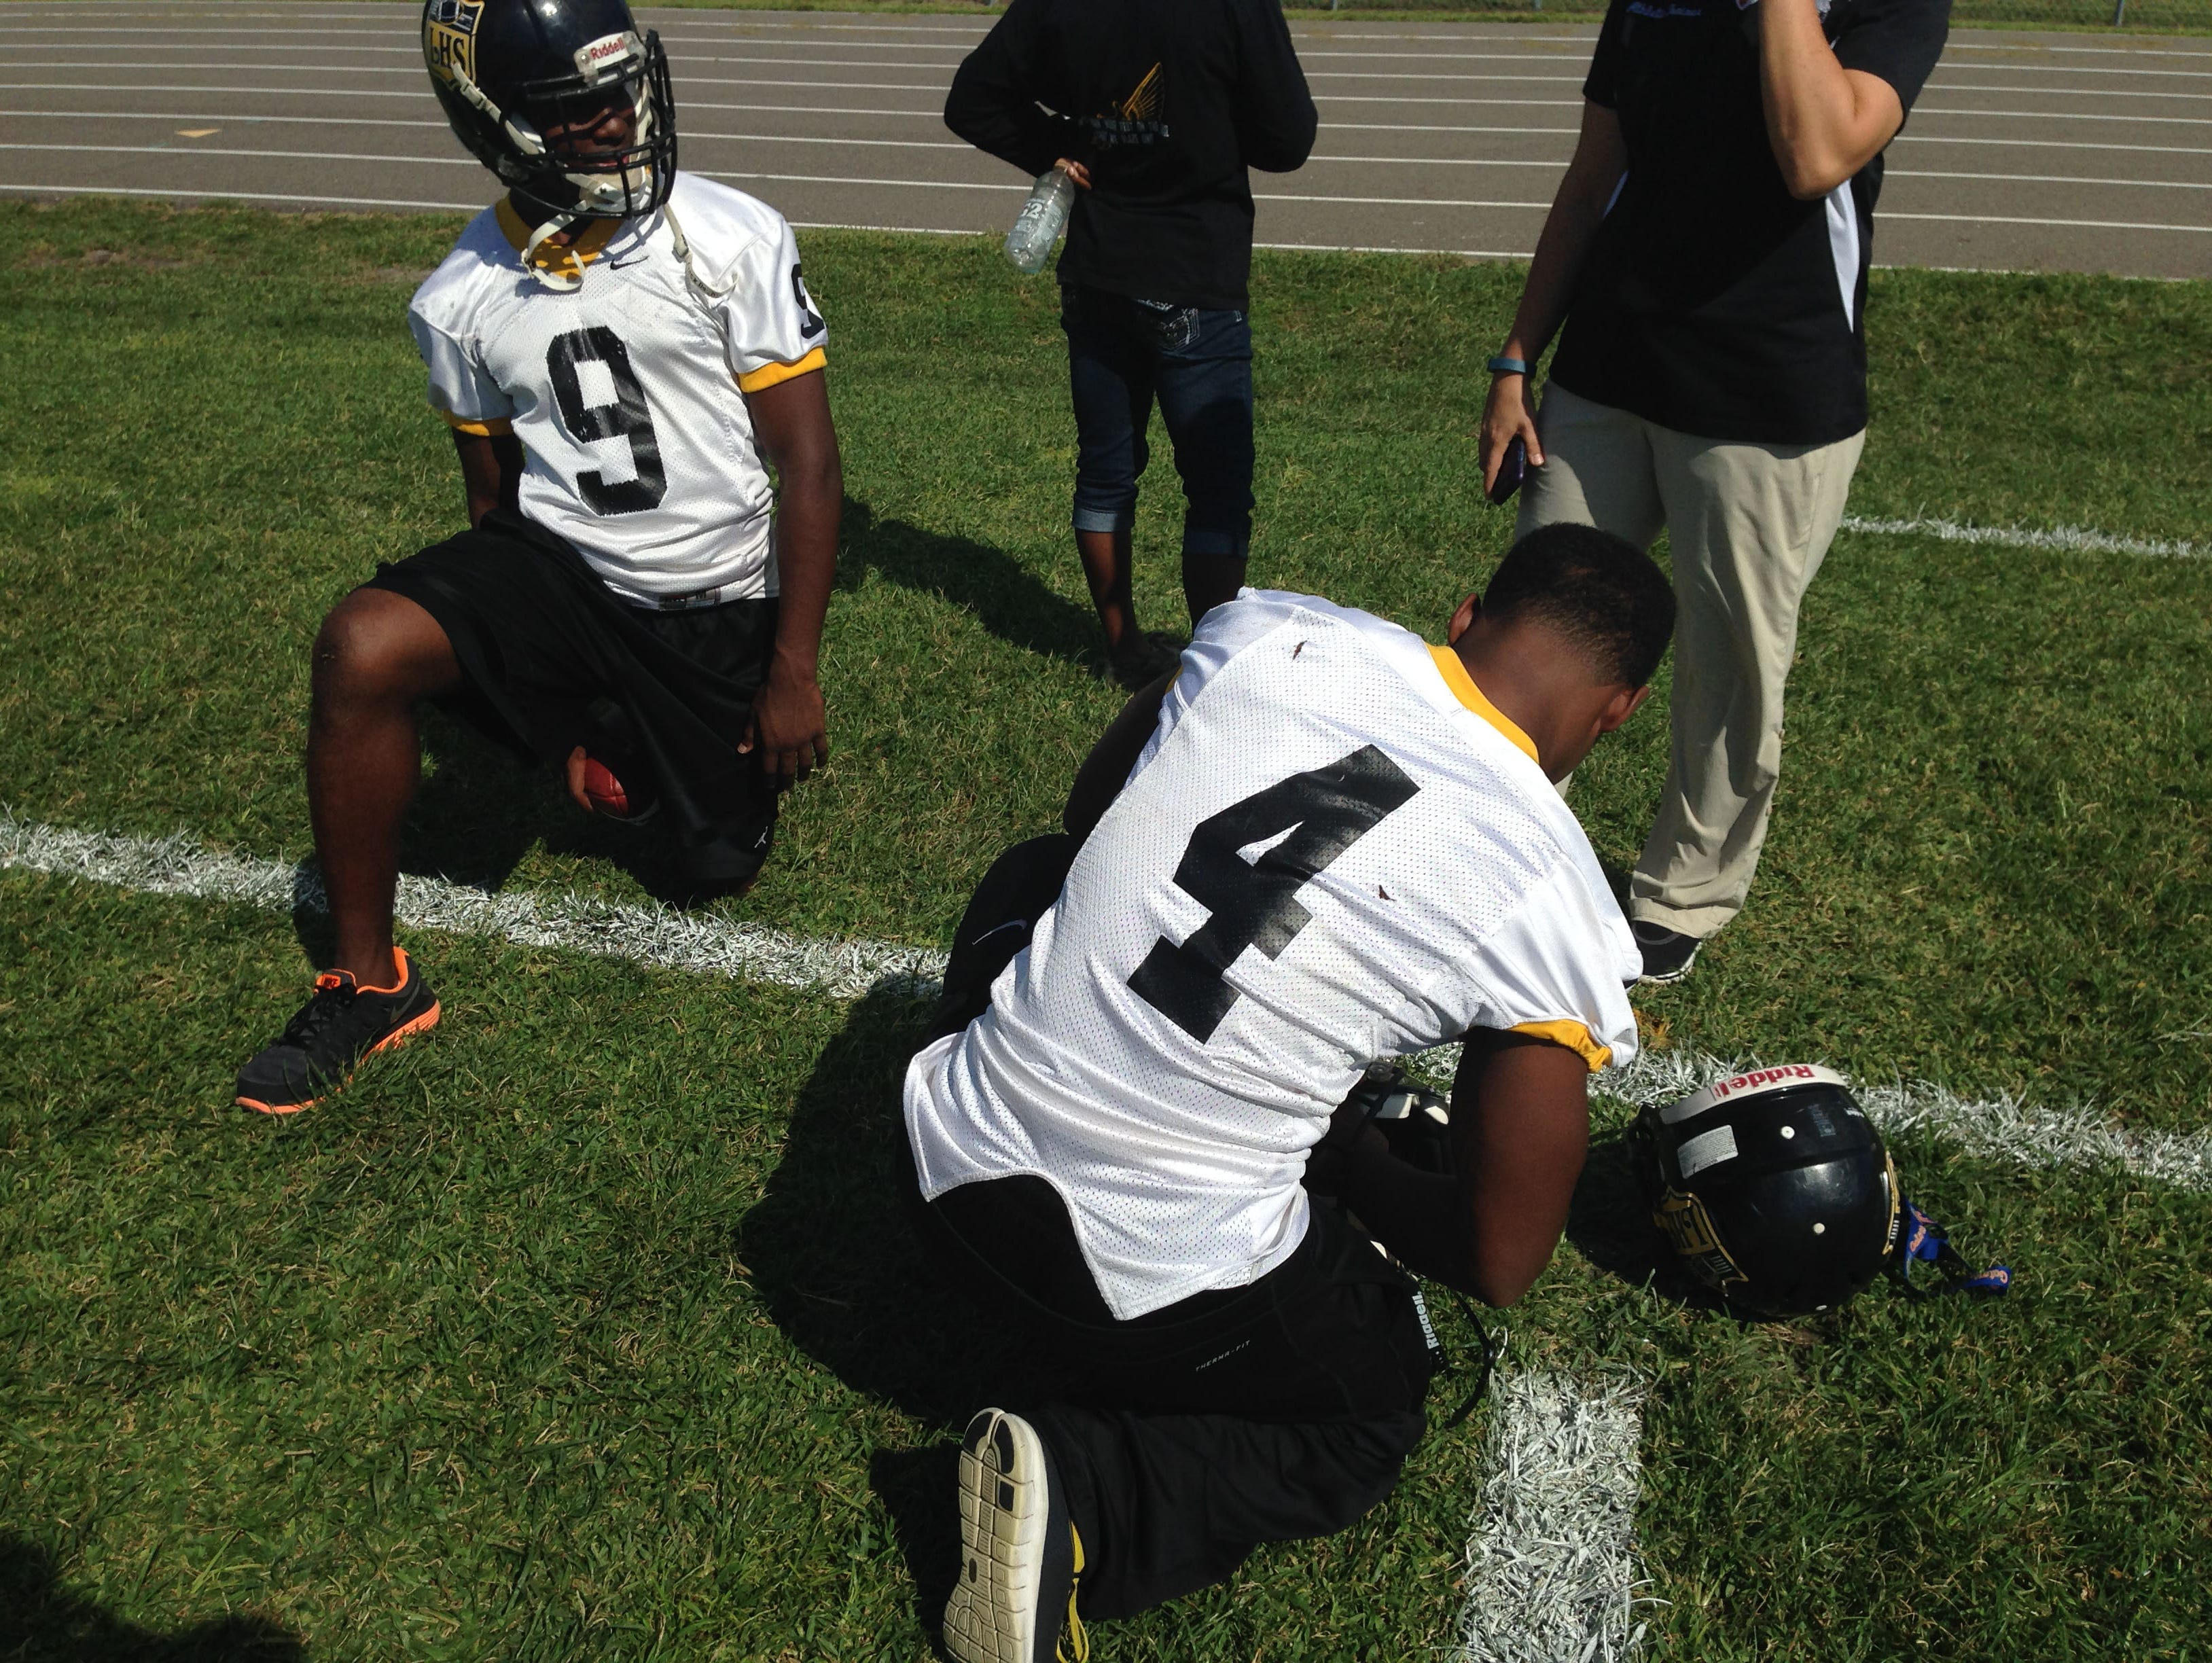 Some Lakewood High players will be wearing concussion sensors in their helmets during Friday's game.